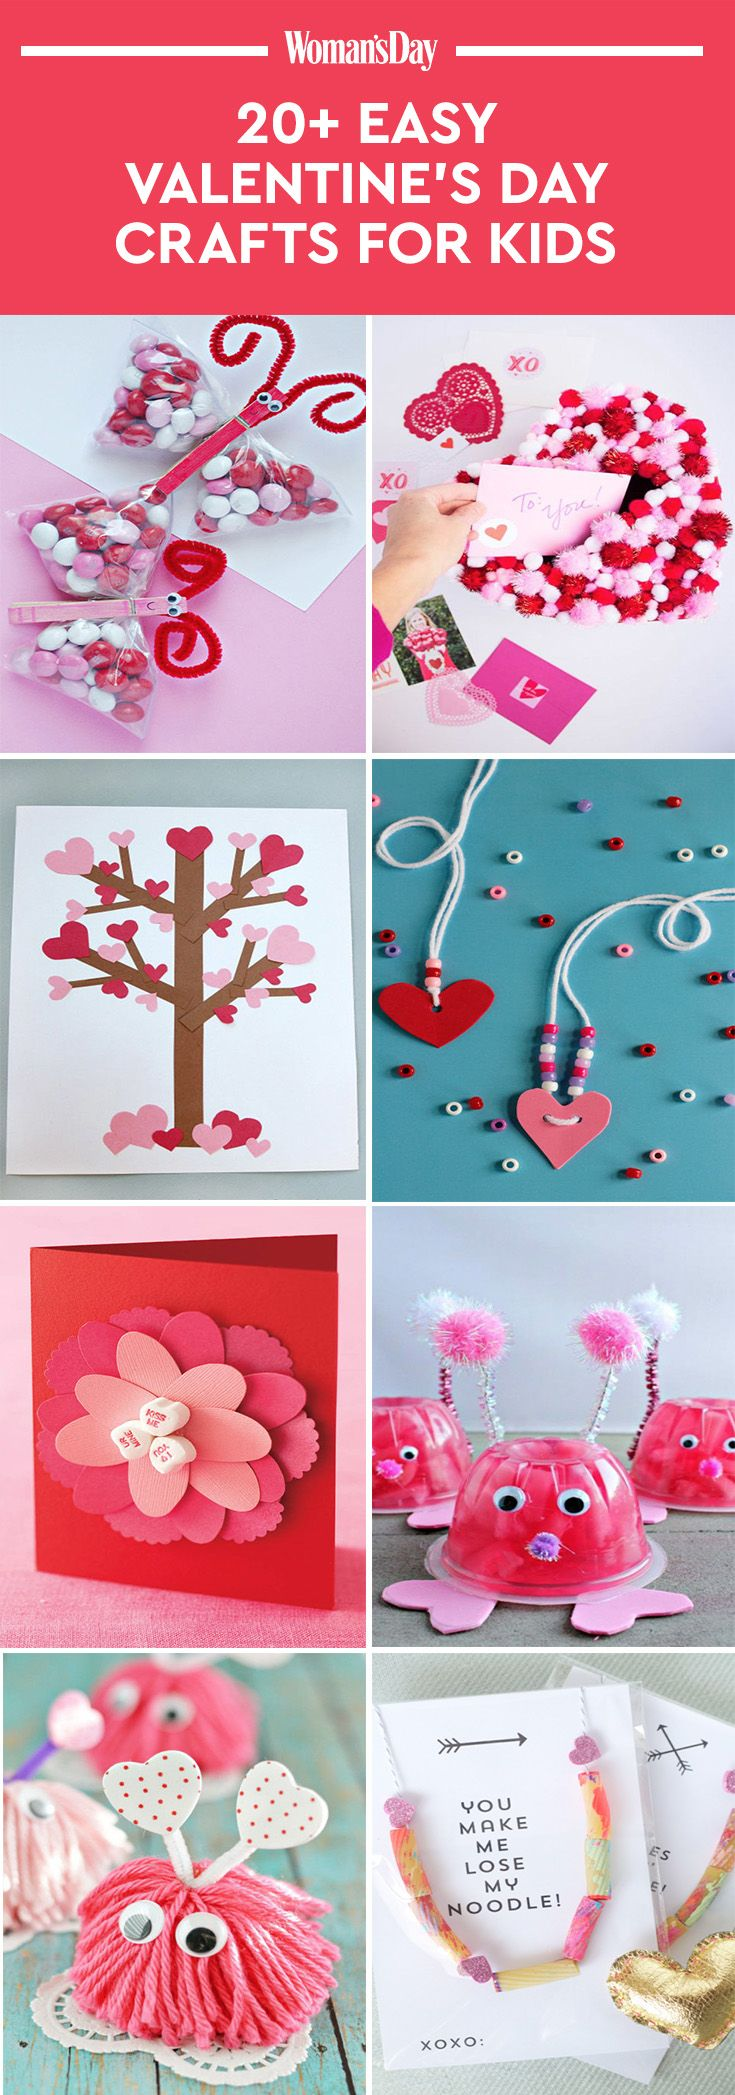 Valentines Day Craft Ideas For Kids Part - 29: 22 Valentineu0027s Day Crafts For Kids - Fun Heart Arts And Crafts Projects For  Toddlers And Kids